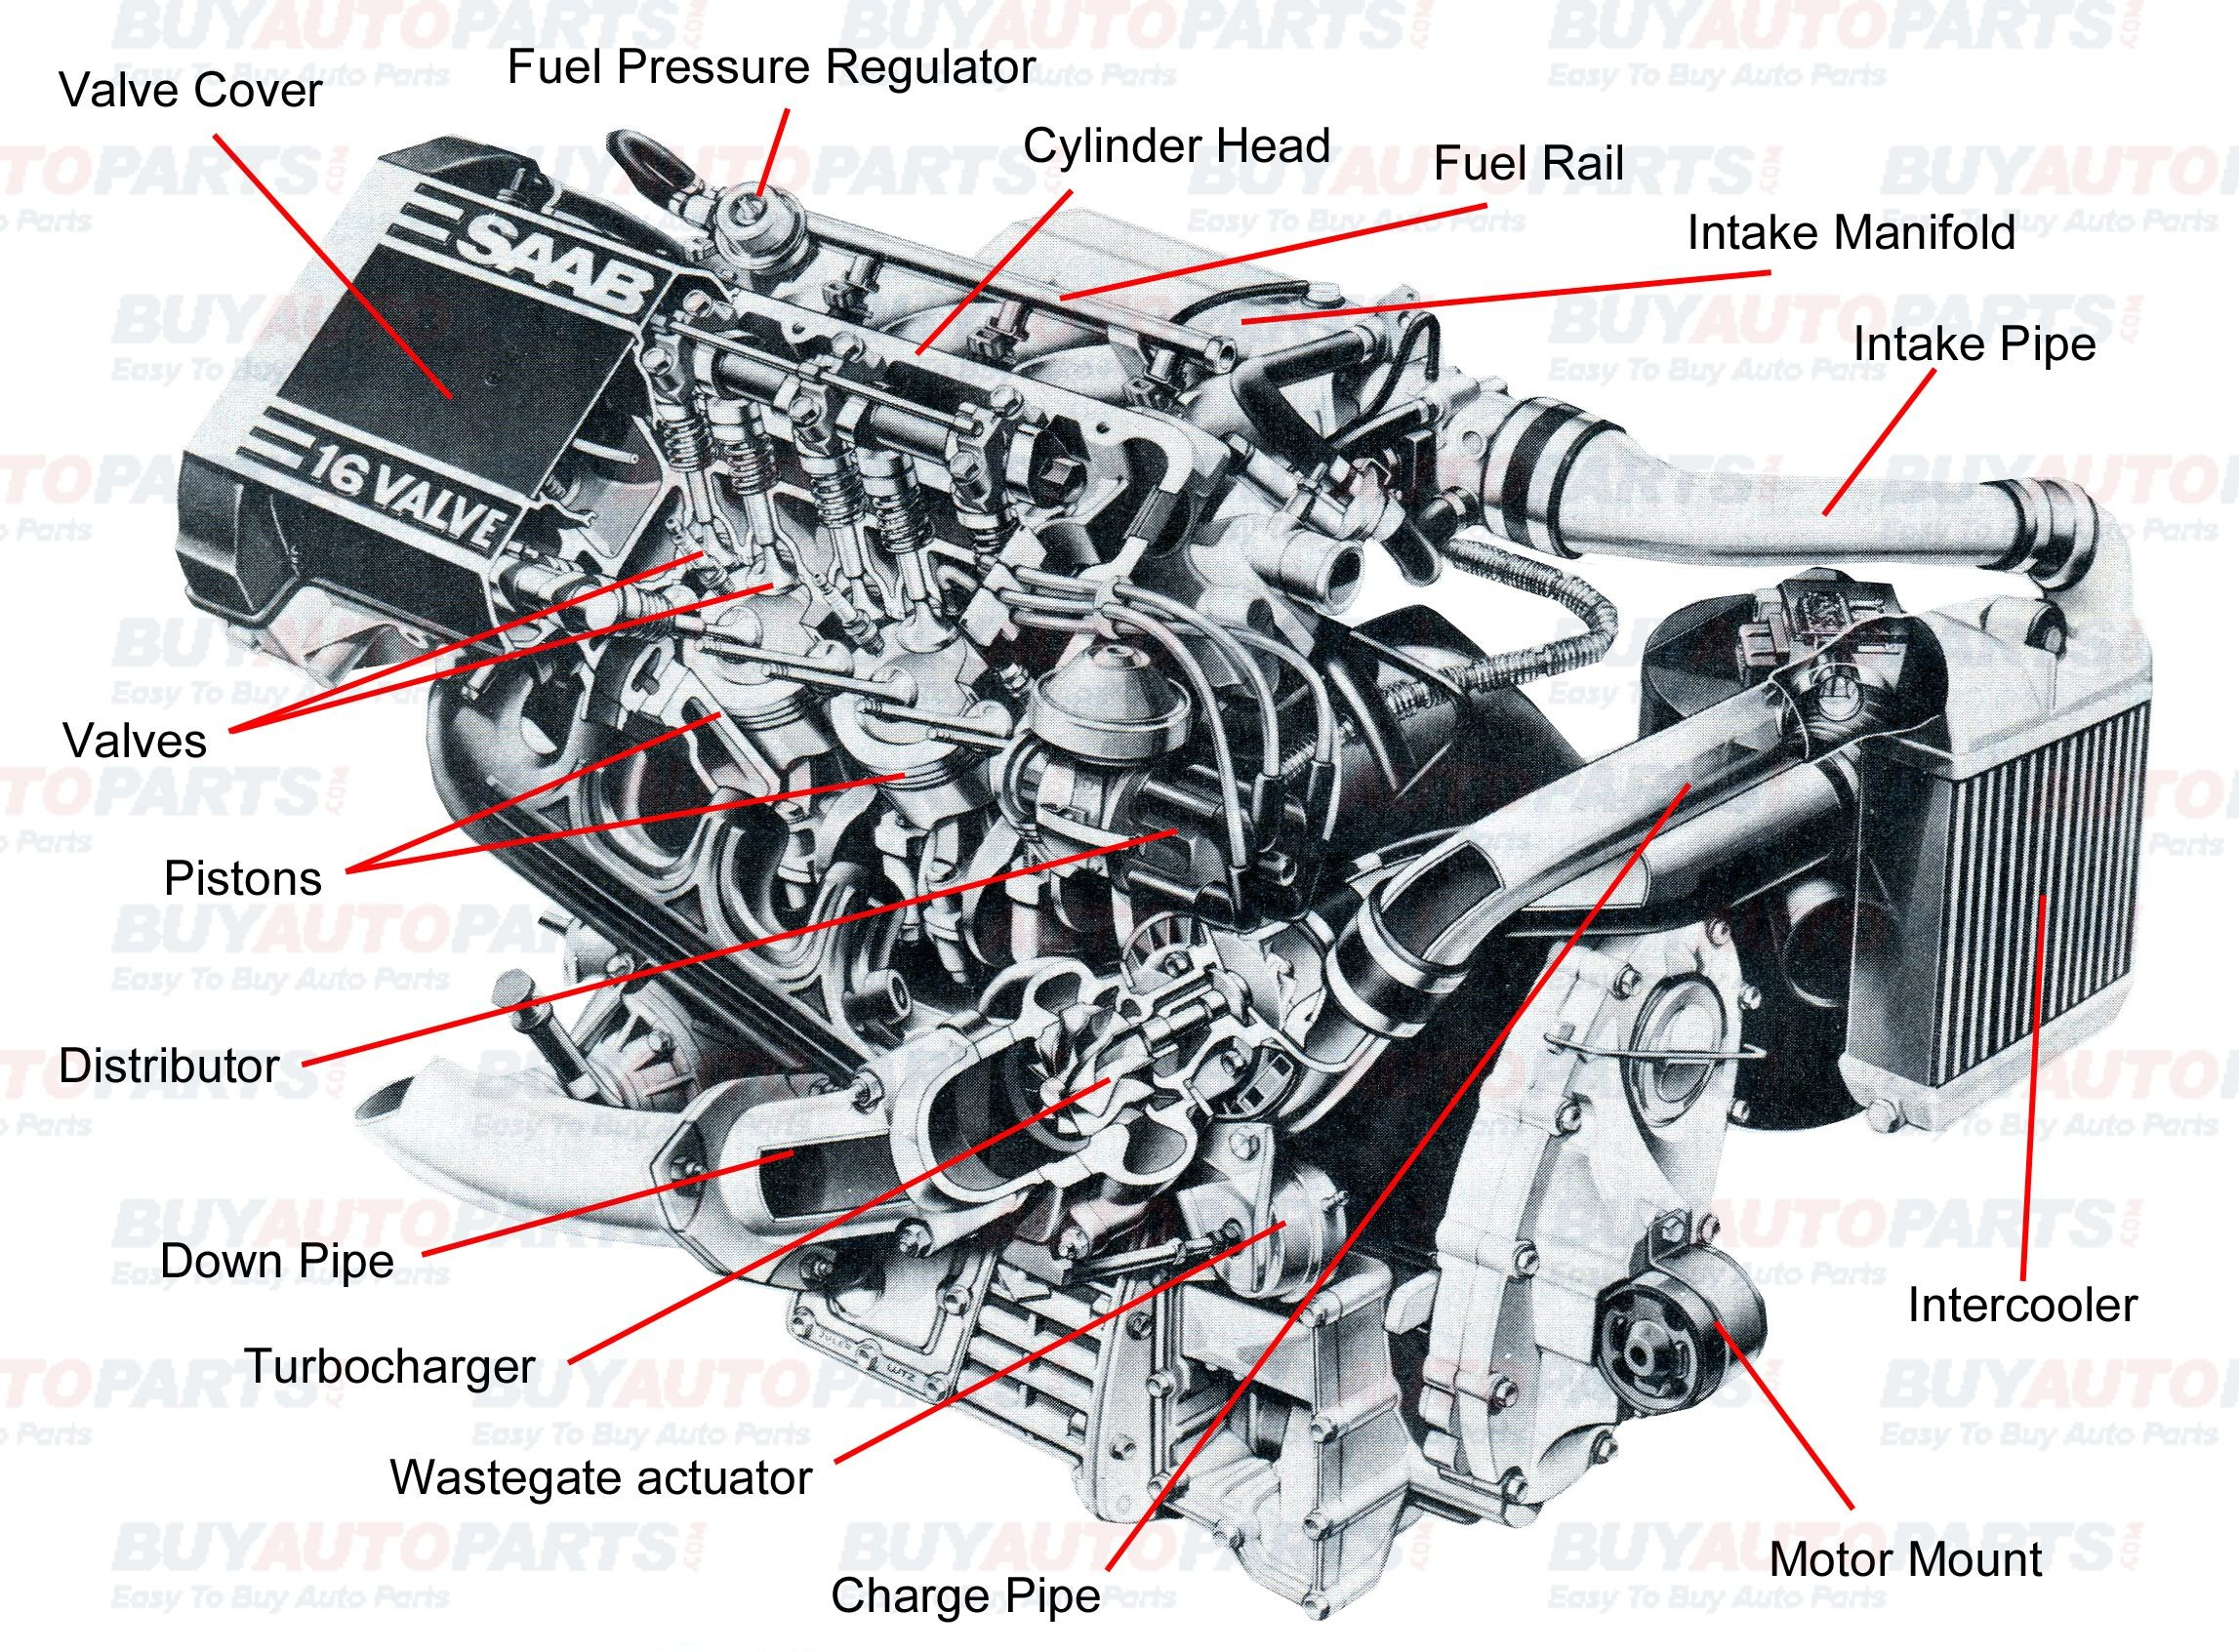 Camshaft Parts Diagram All Internal Bustion Engines Have the Same Basic Ponents the Of Camshaft Parts Diagram